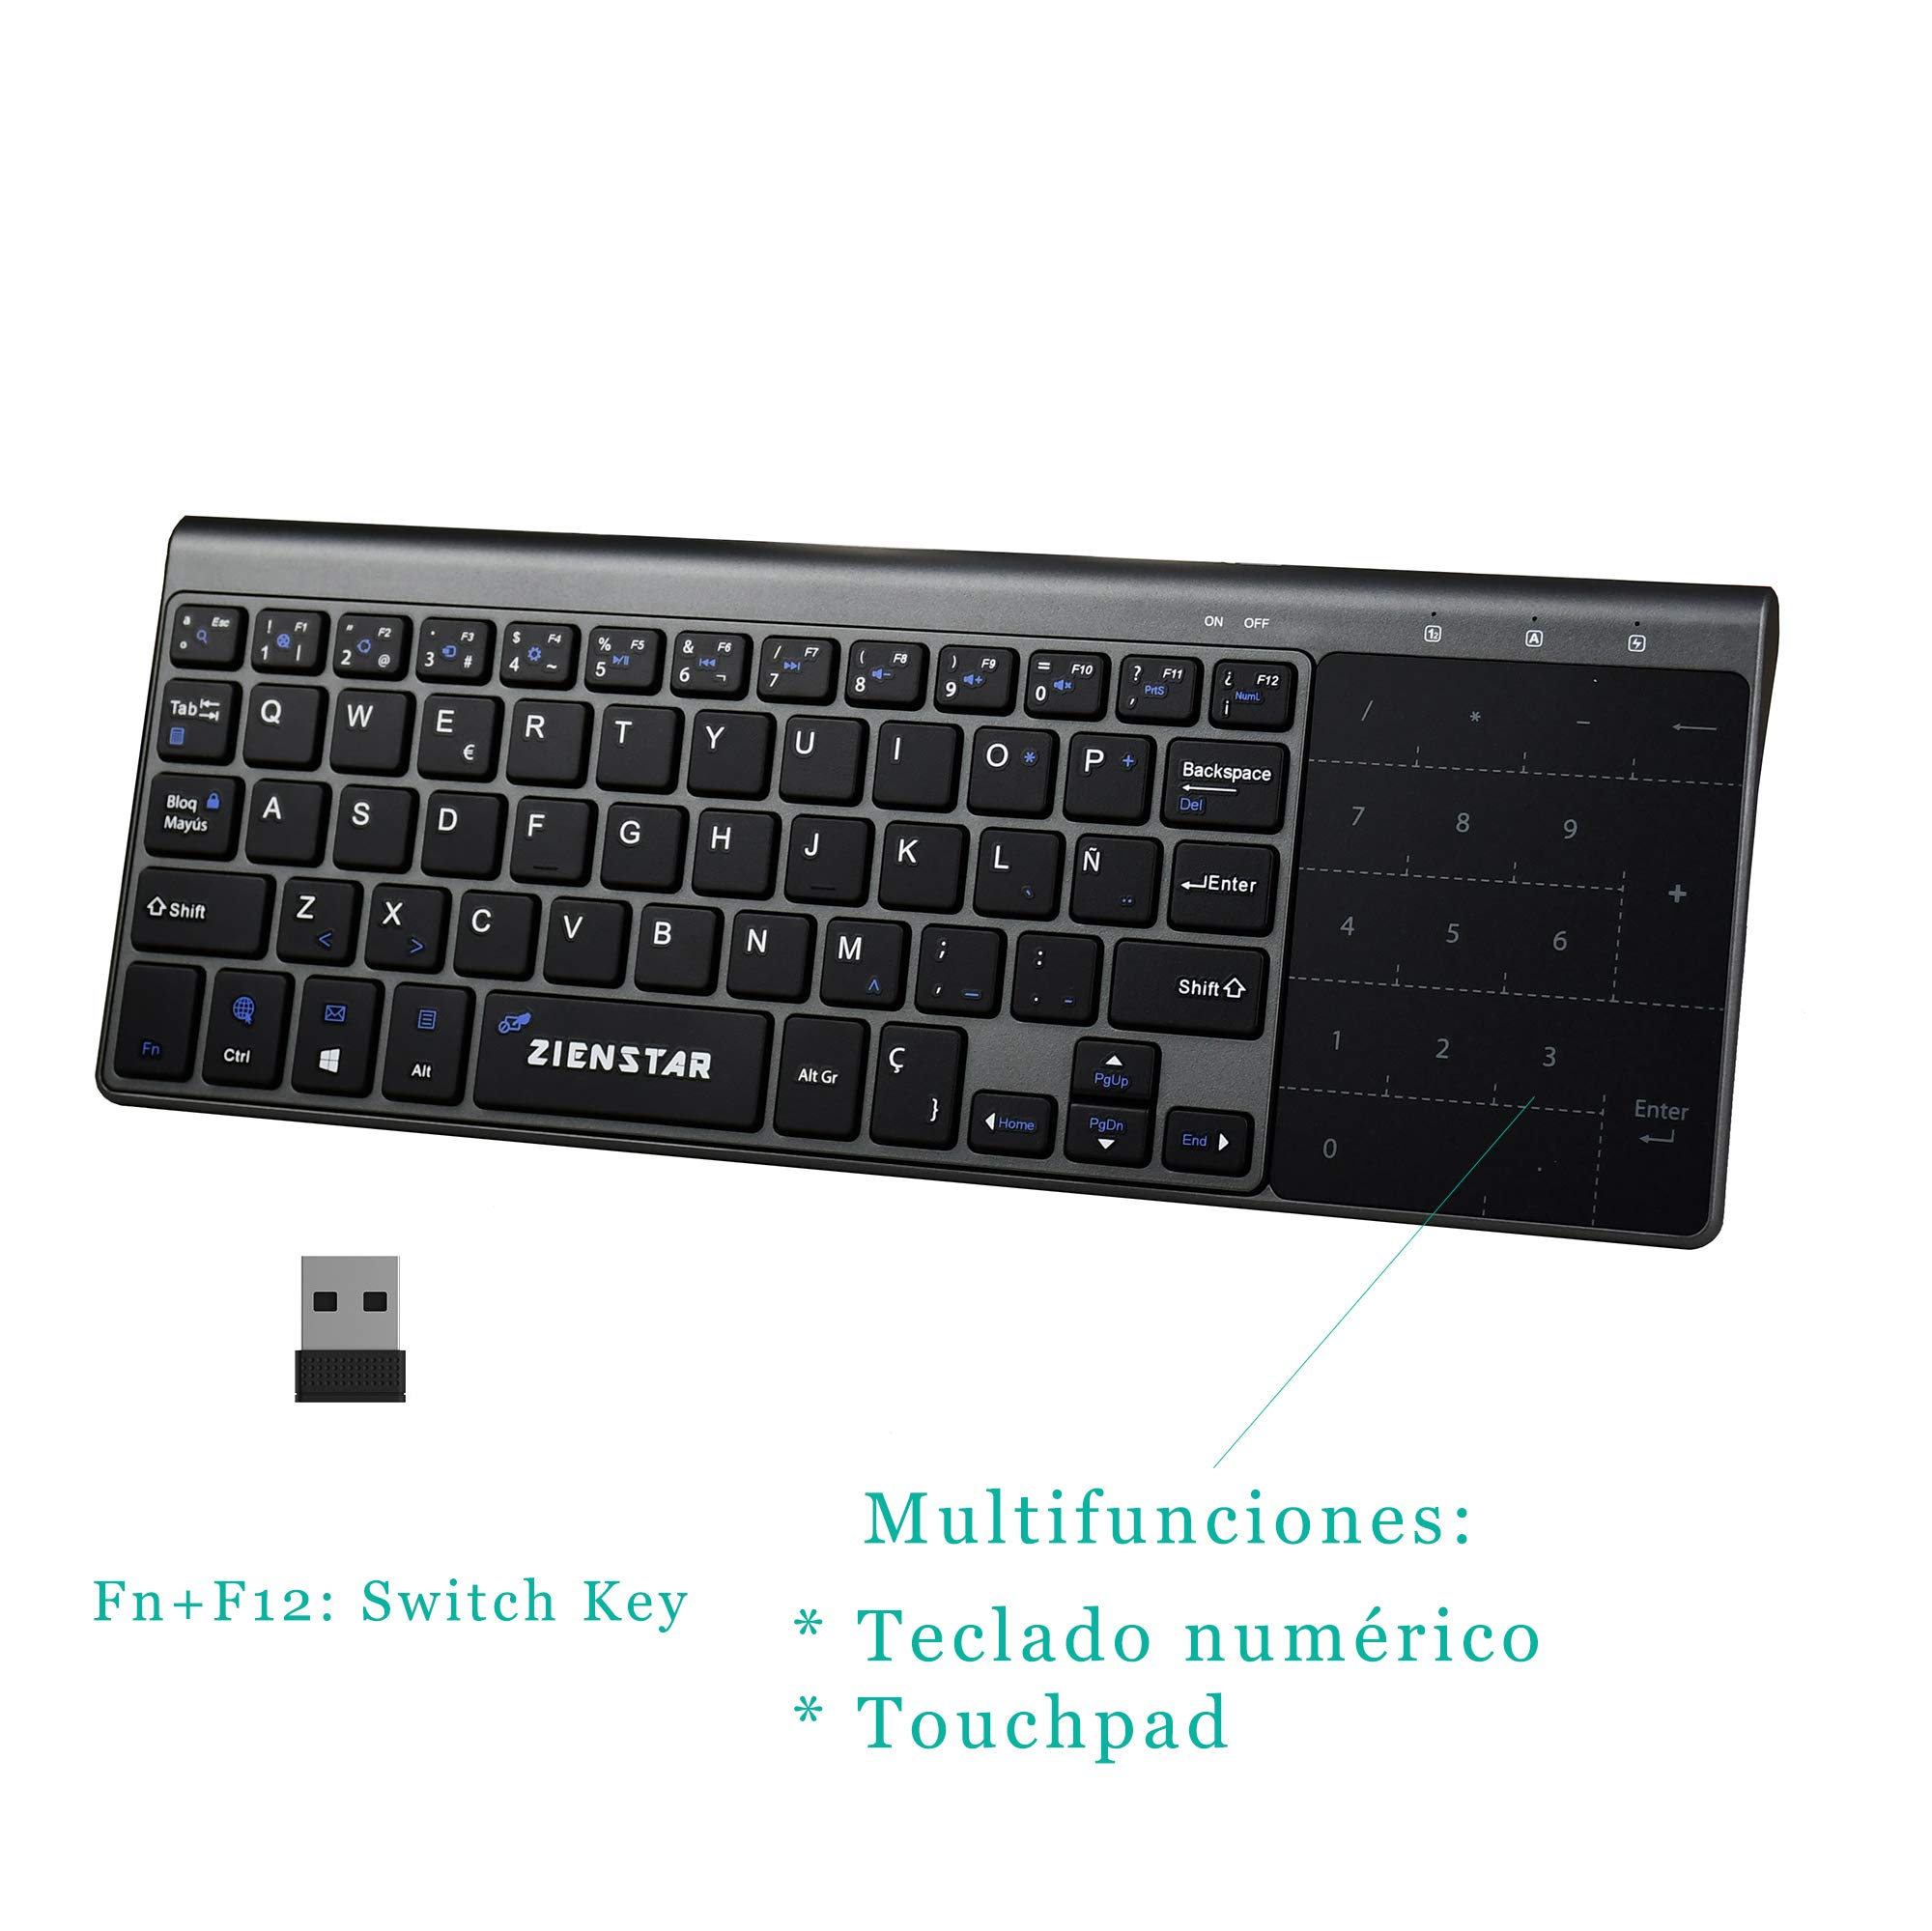 Zienstar-2.4Ghz Mini Teclado Inalámbrico con Touchpad y Teclado Numérico, Receptor USB para Smart TV, Android TV Box, HTPC, IPTV, XBOX360, PS3, PC, etc- Español: Amazon.es: Electrónica